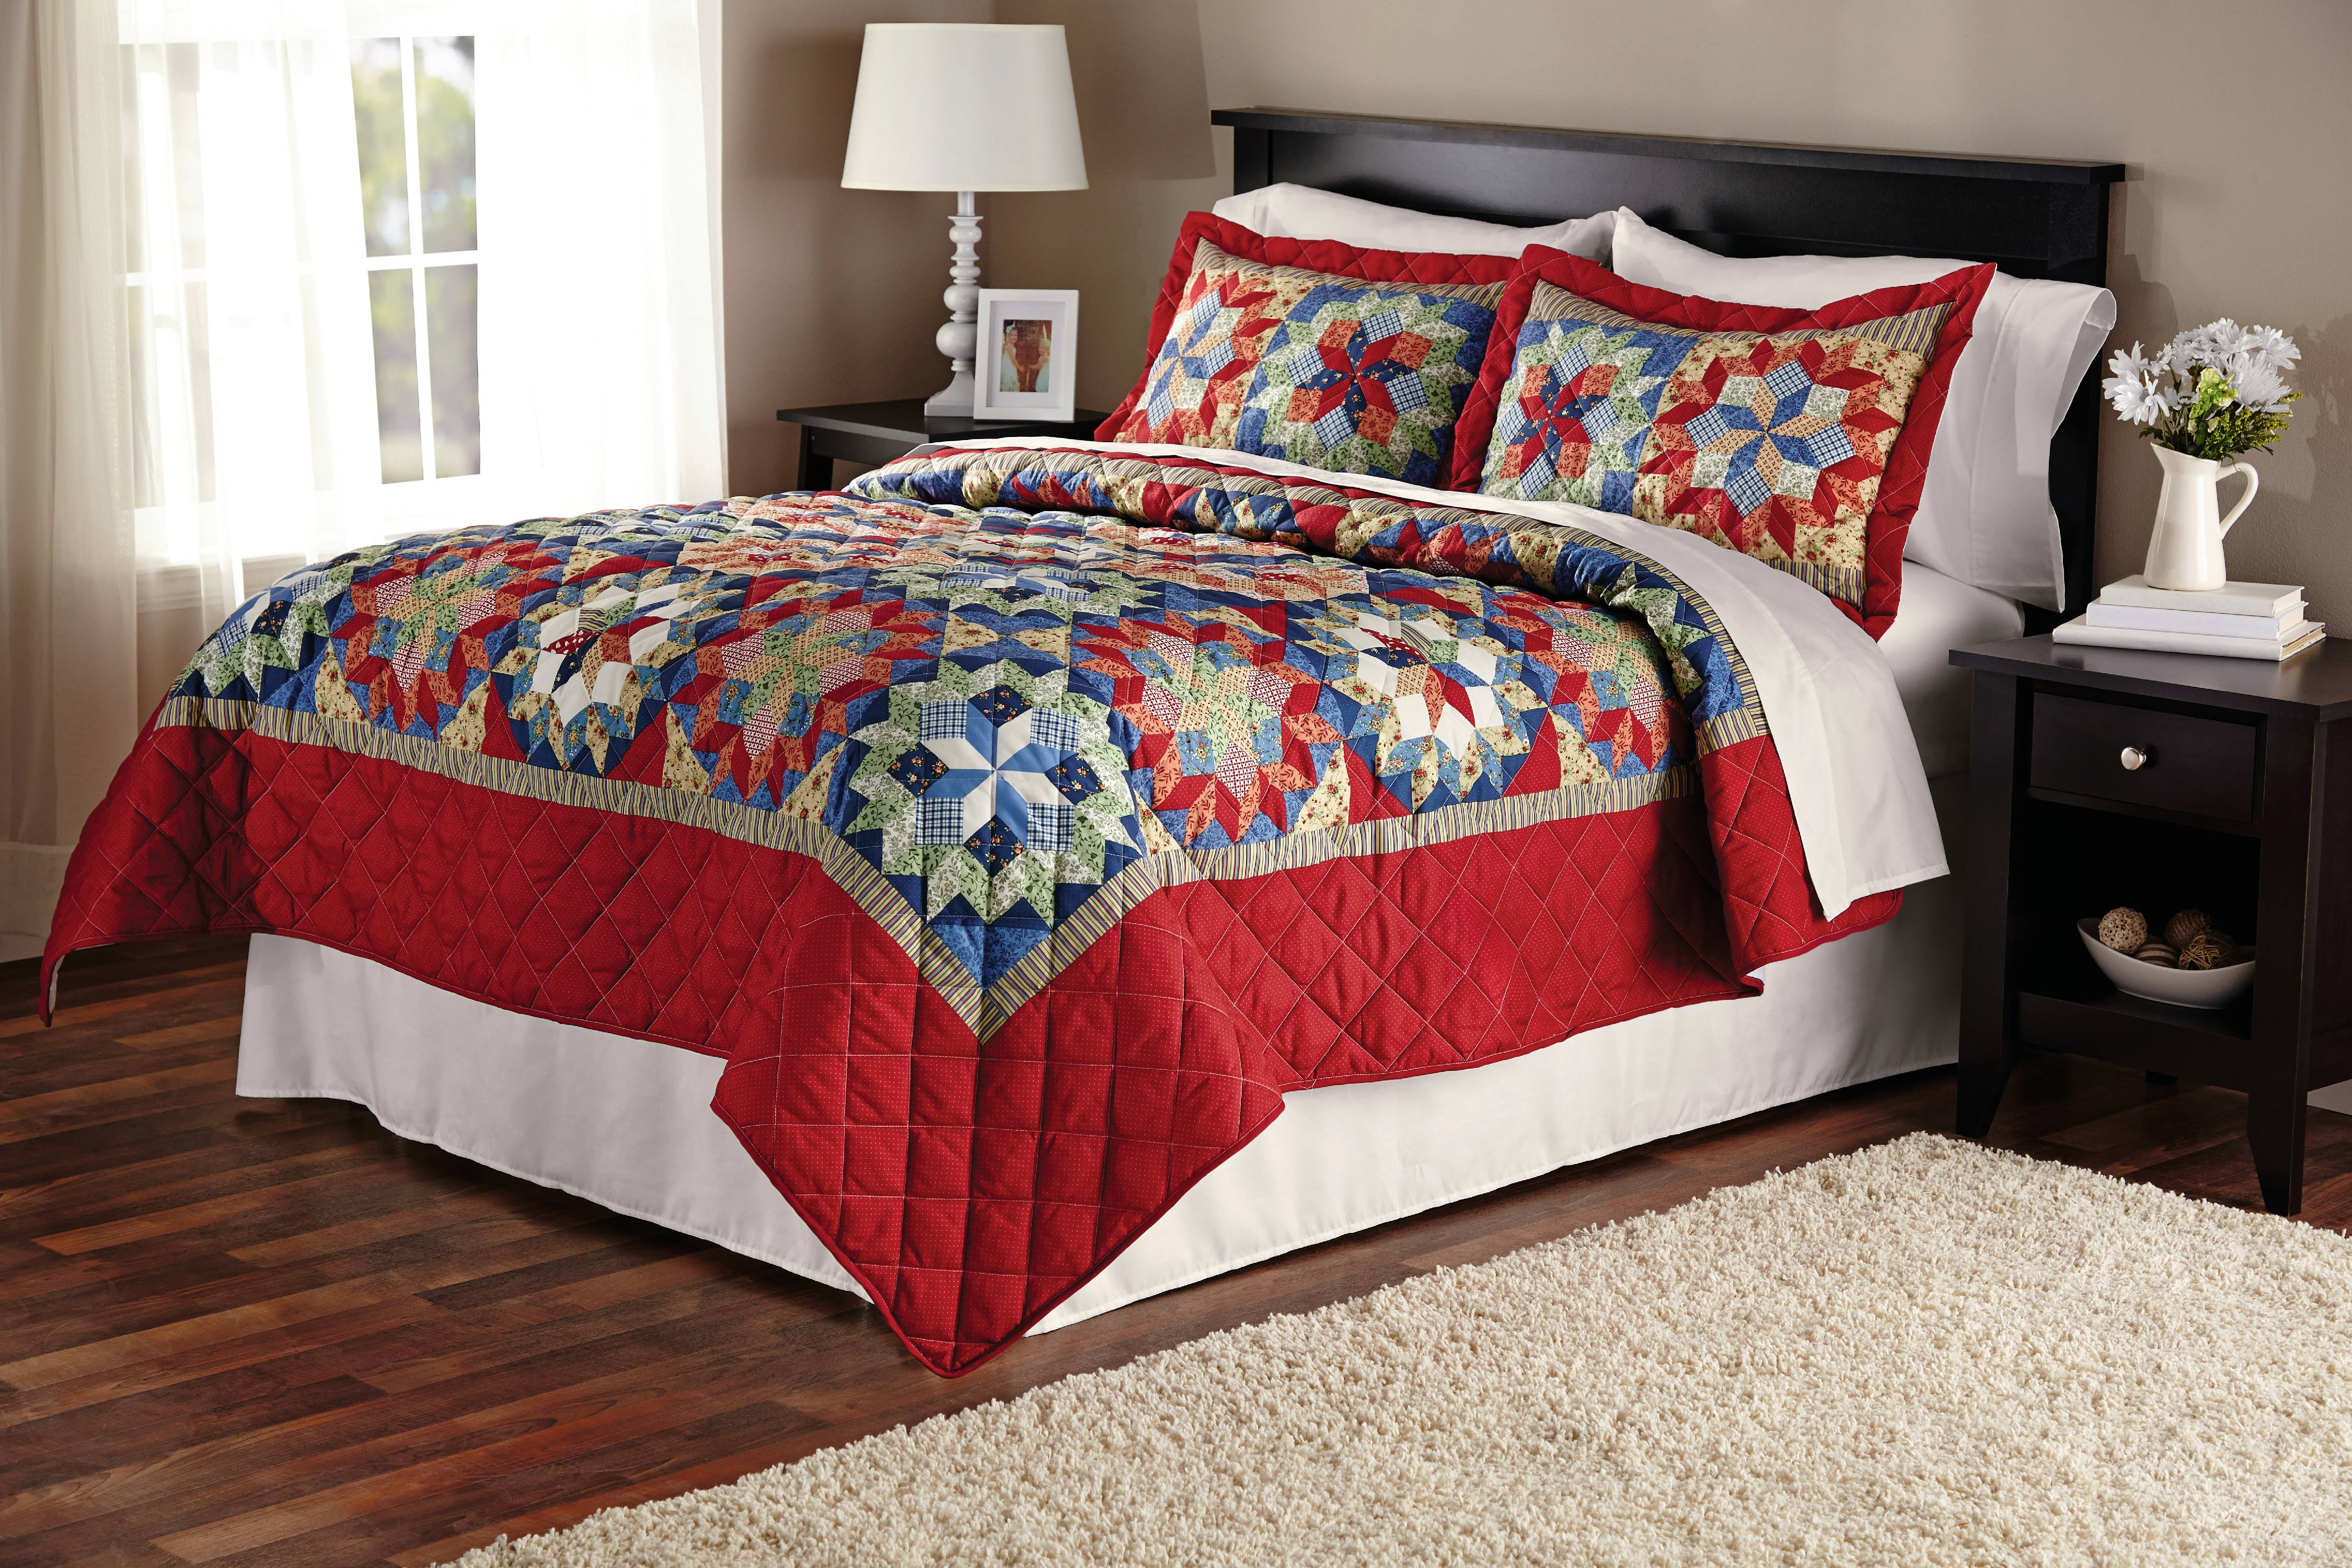 Mainstays Shooting Star Classic Patterned Quilt by ORIENT ASSET SHANGHAI HOME TEXTILES IMP AND EXP CO LTD